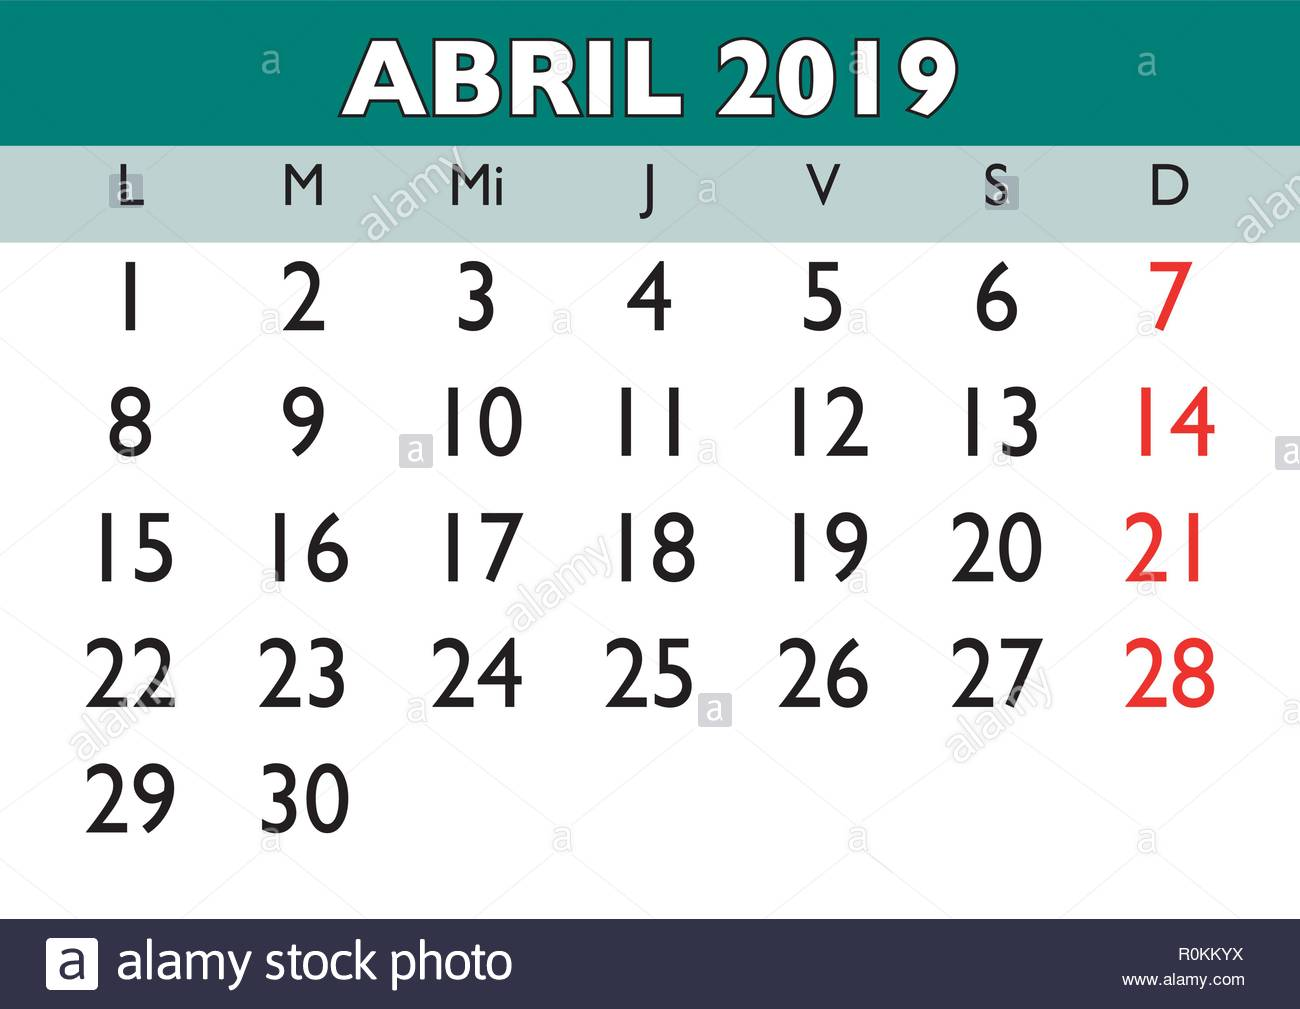 Calendario 2019 Mes A Mes.April Month In A Year 2019 Wall Calendar In Spanish Abril 2019